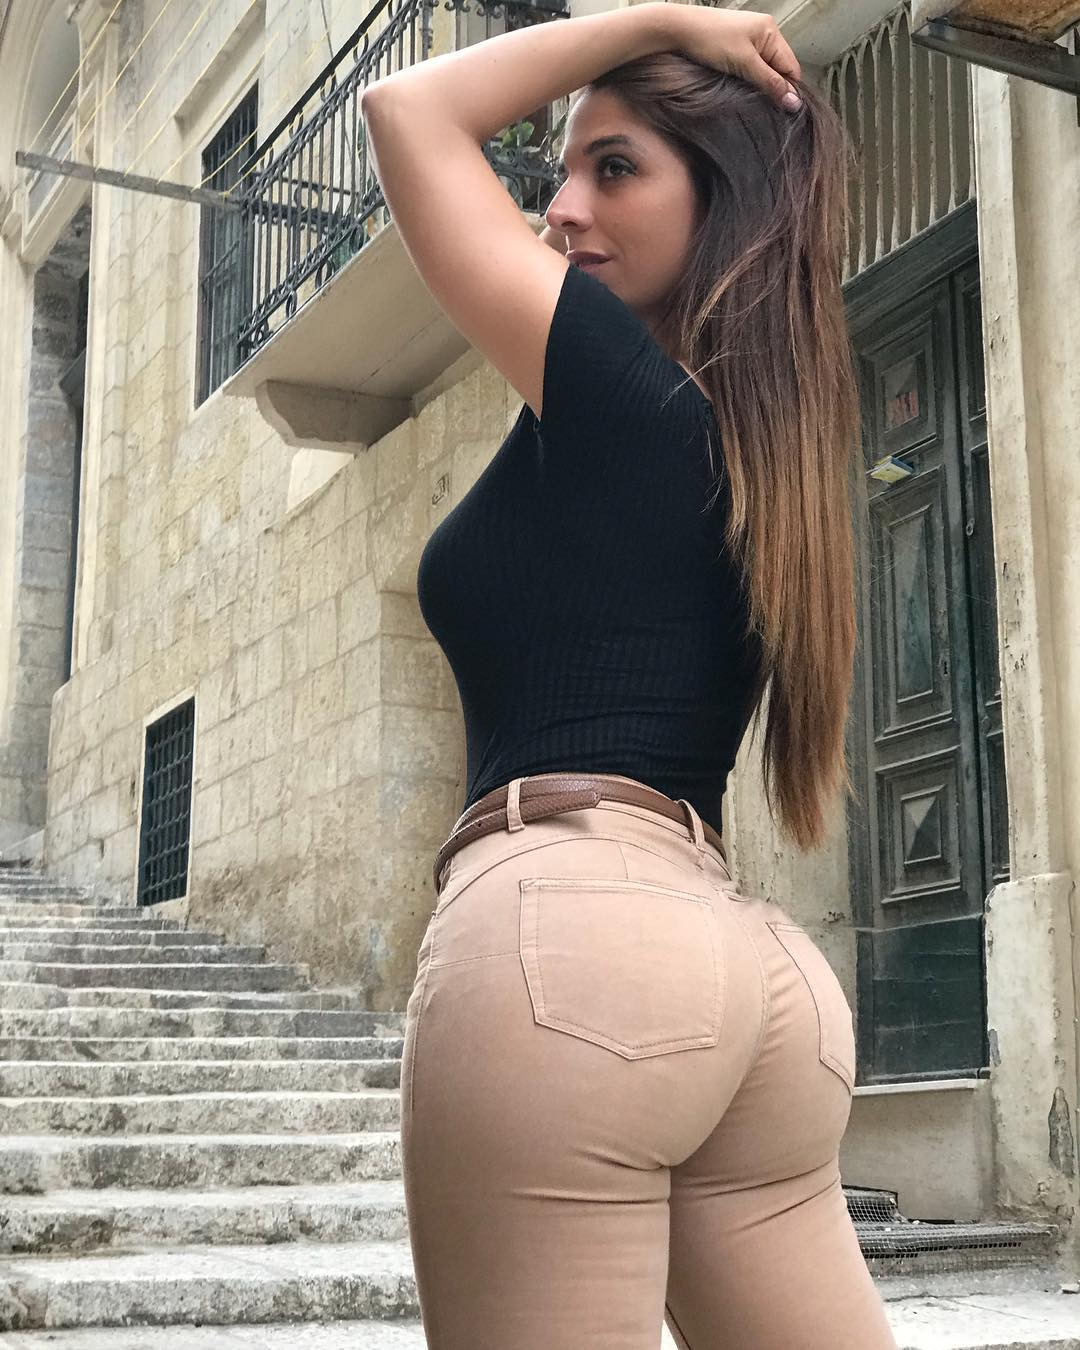 Thicc ass in jeans babe